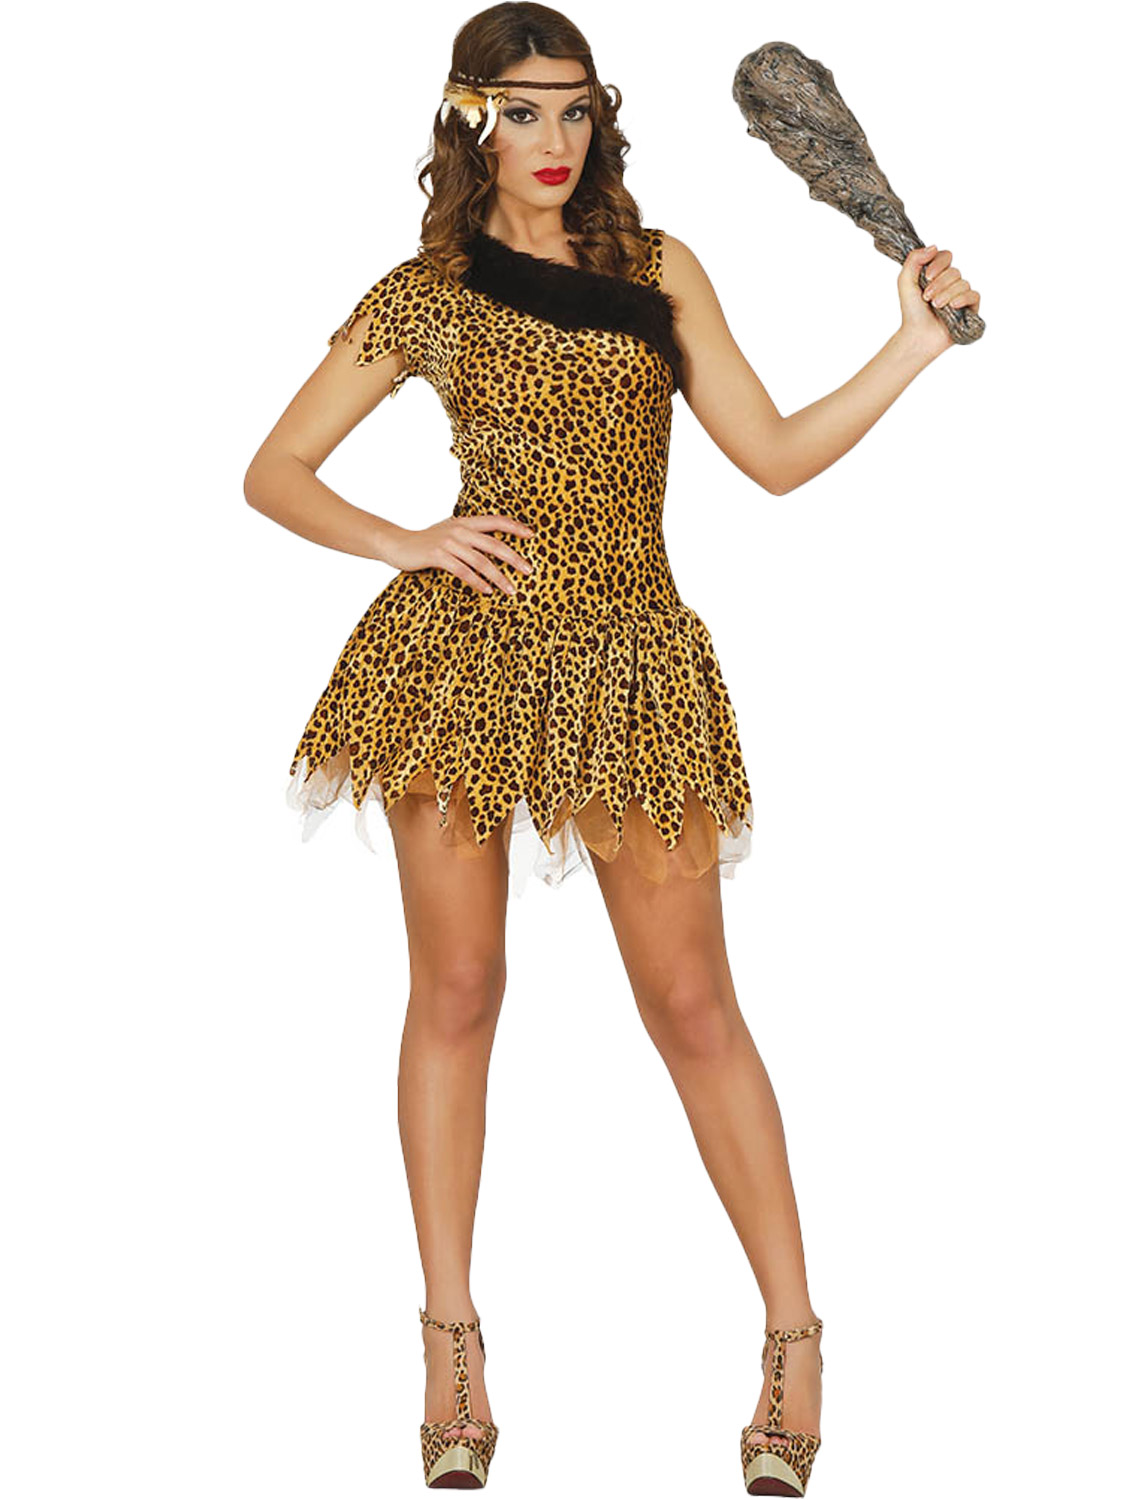 Ladies Cave Girl Leopard Print Cavewoman Fancy Dress Costume Outfit New Womens